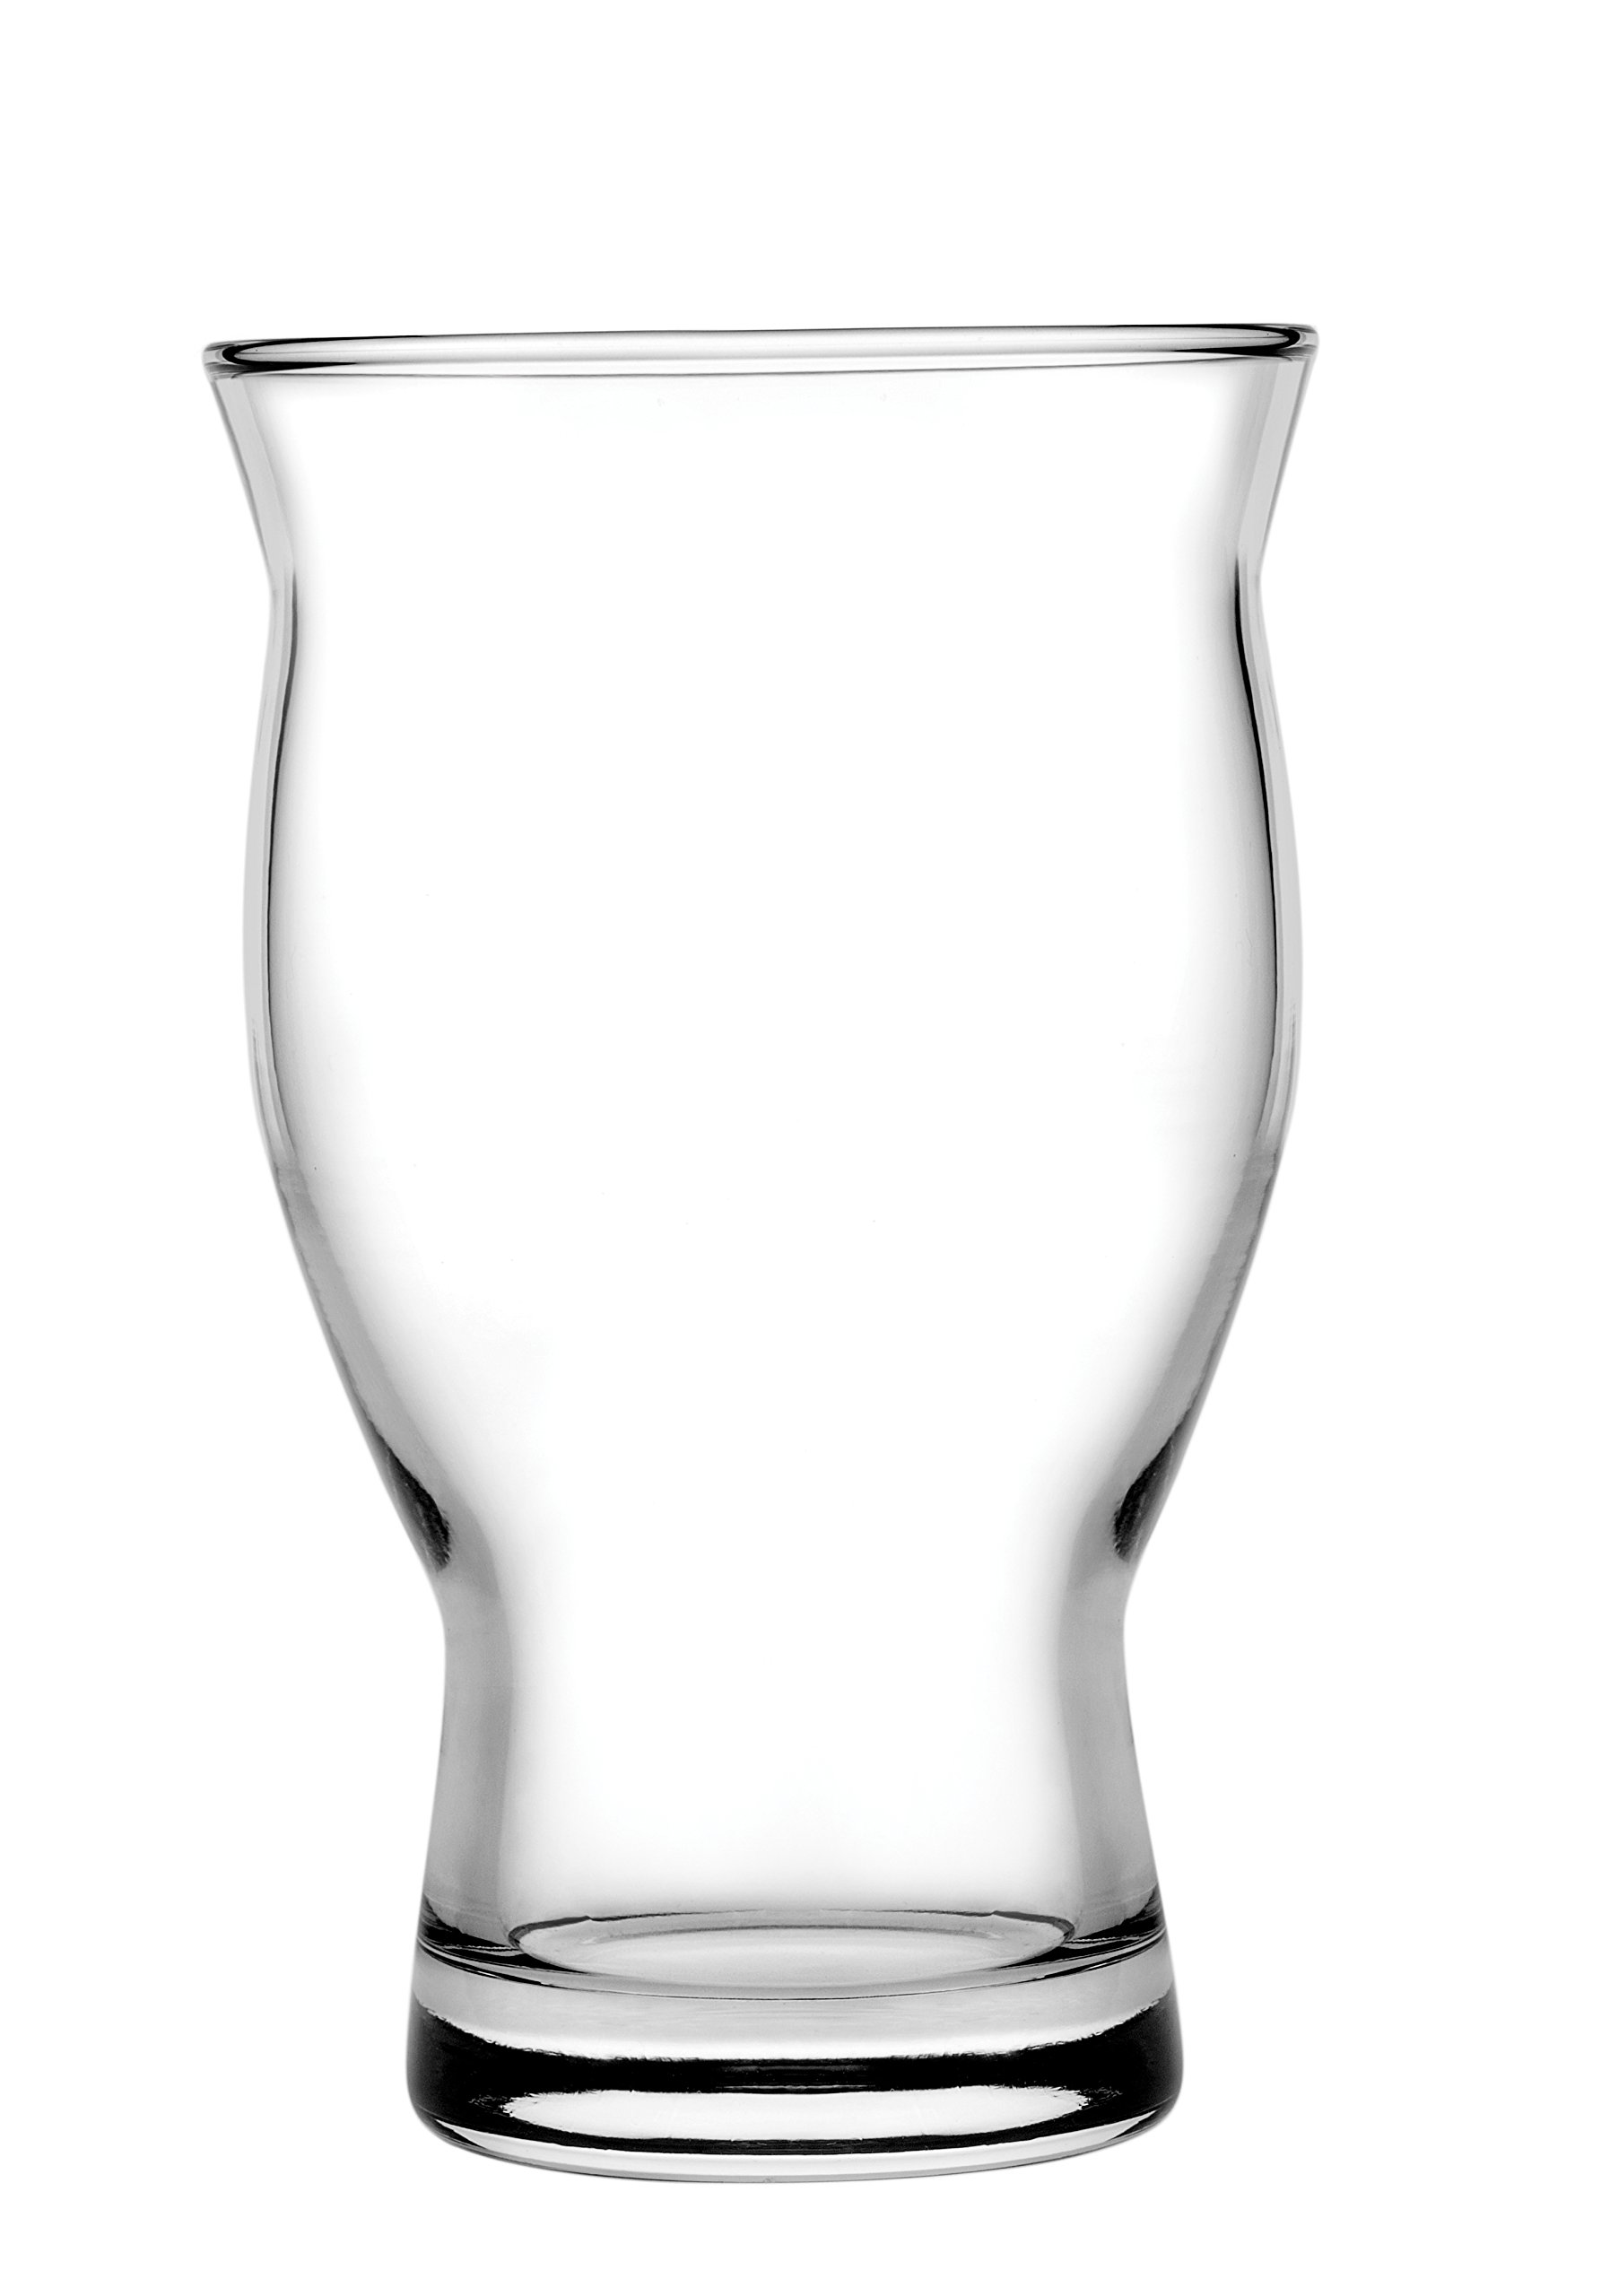 Hospitality Glass Brands 420082-024 Revival 5 oz. Taster (Pack of 24)